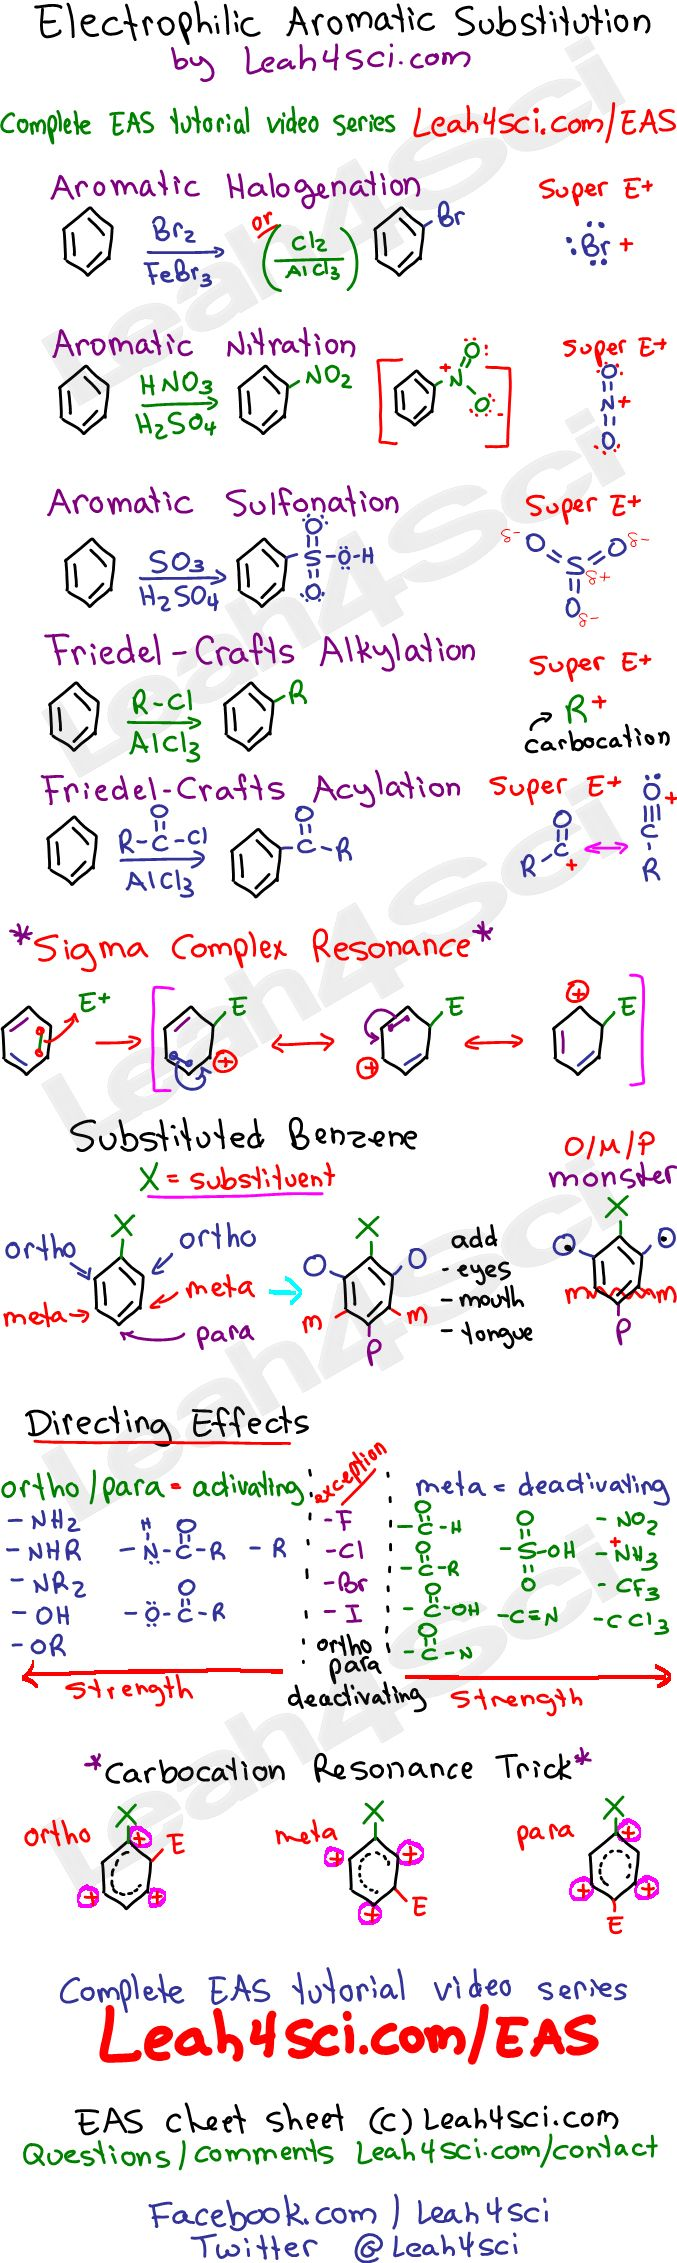 Electrophilic-Aromatic-Substitution-Leah4sci-Cheat-Sheet-Study-Guide.jpg 677×2,263 pixels